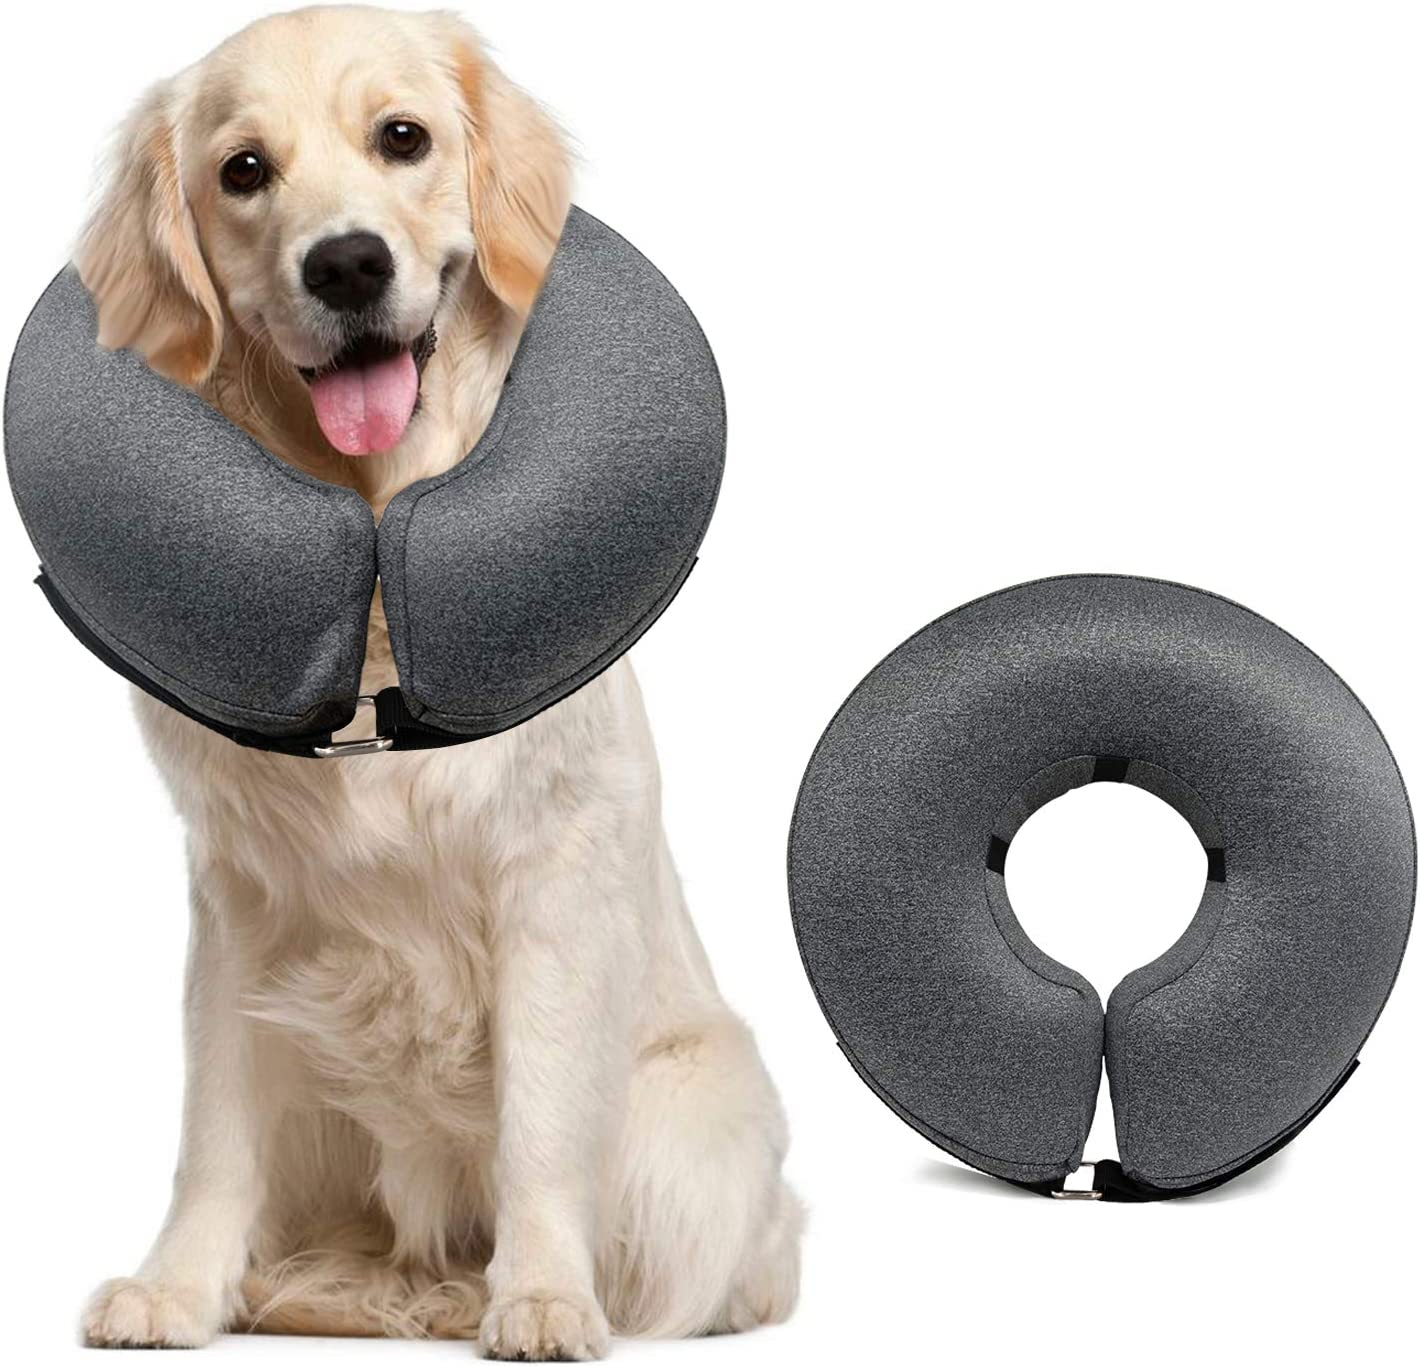 MIDOG Inflatable Alternative Collar for Wounded/Sensitive Dogs